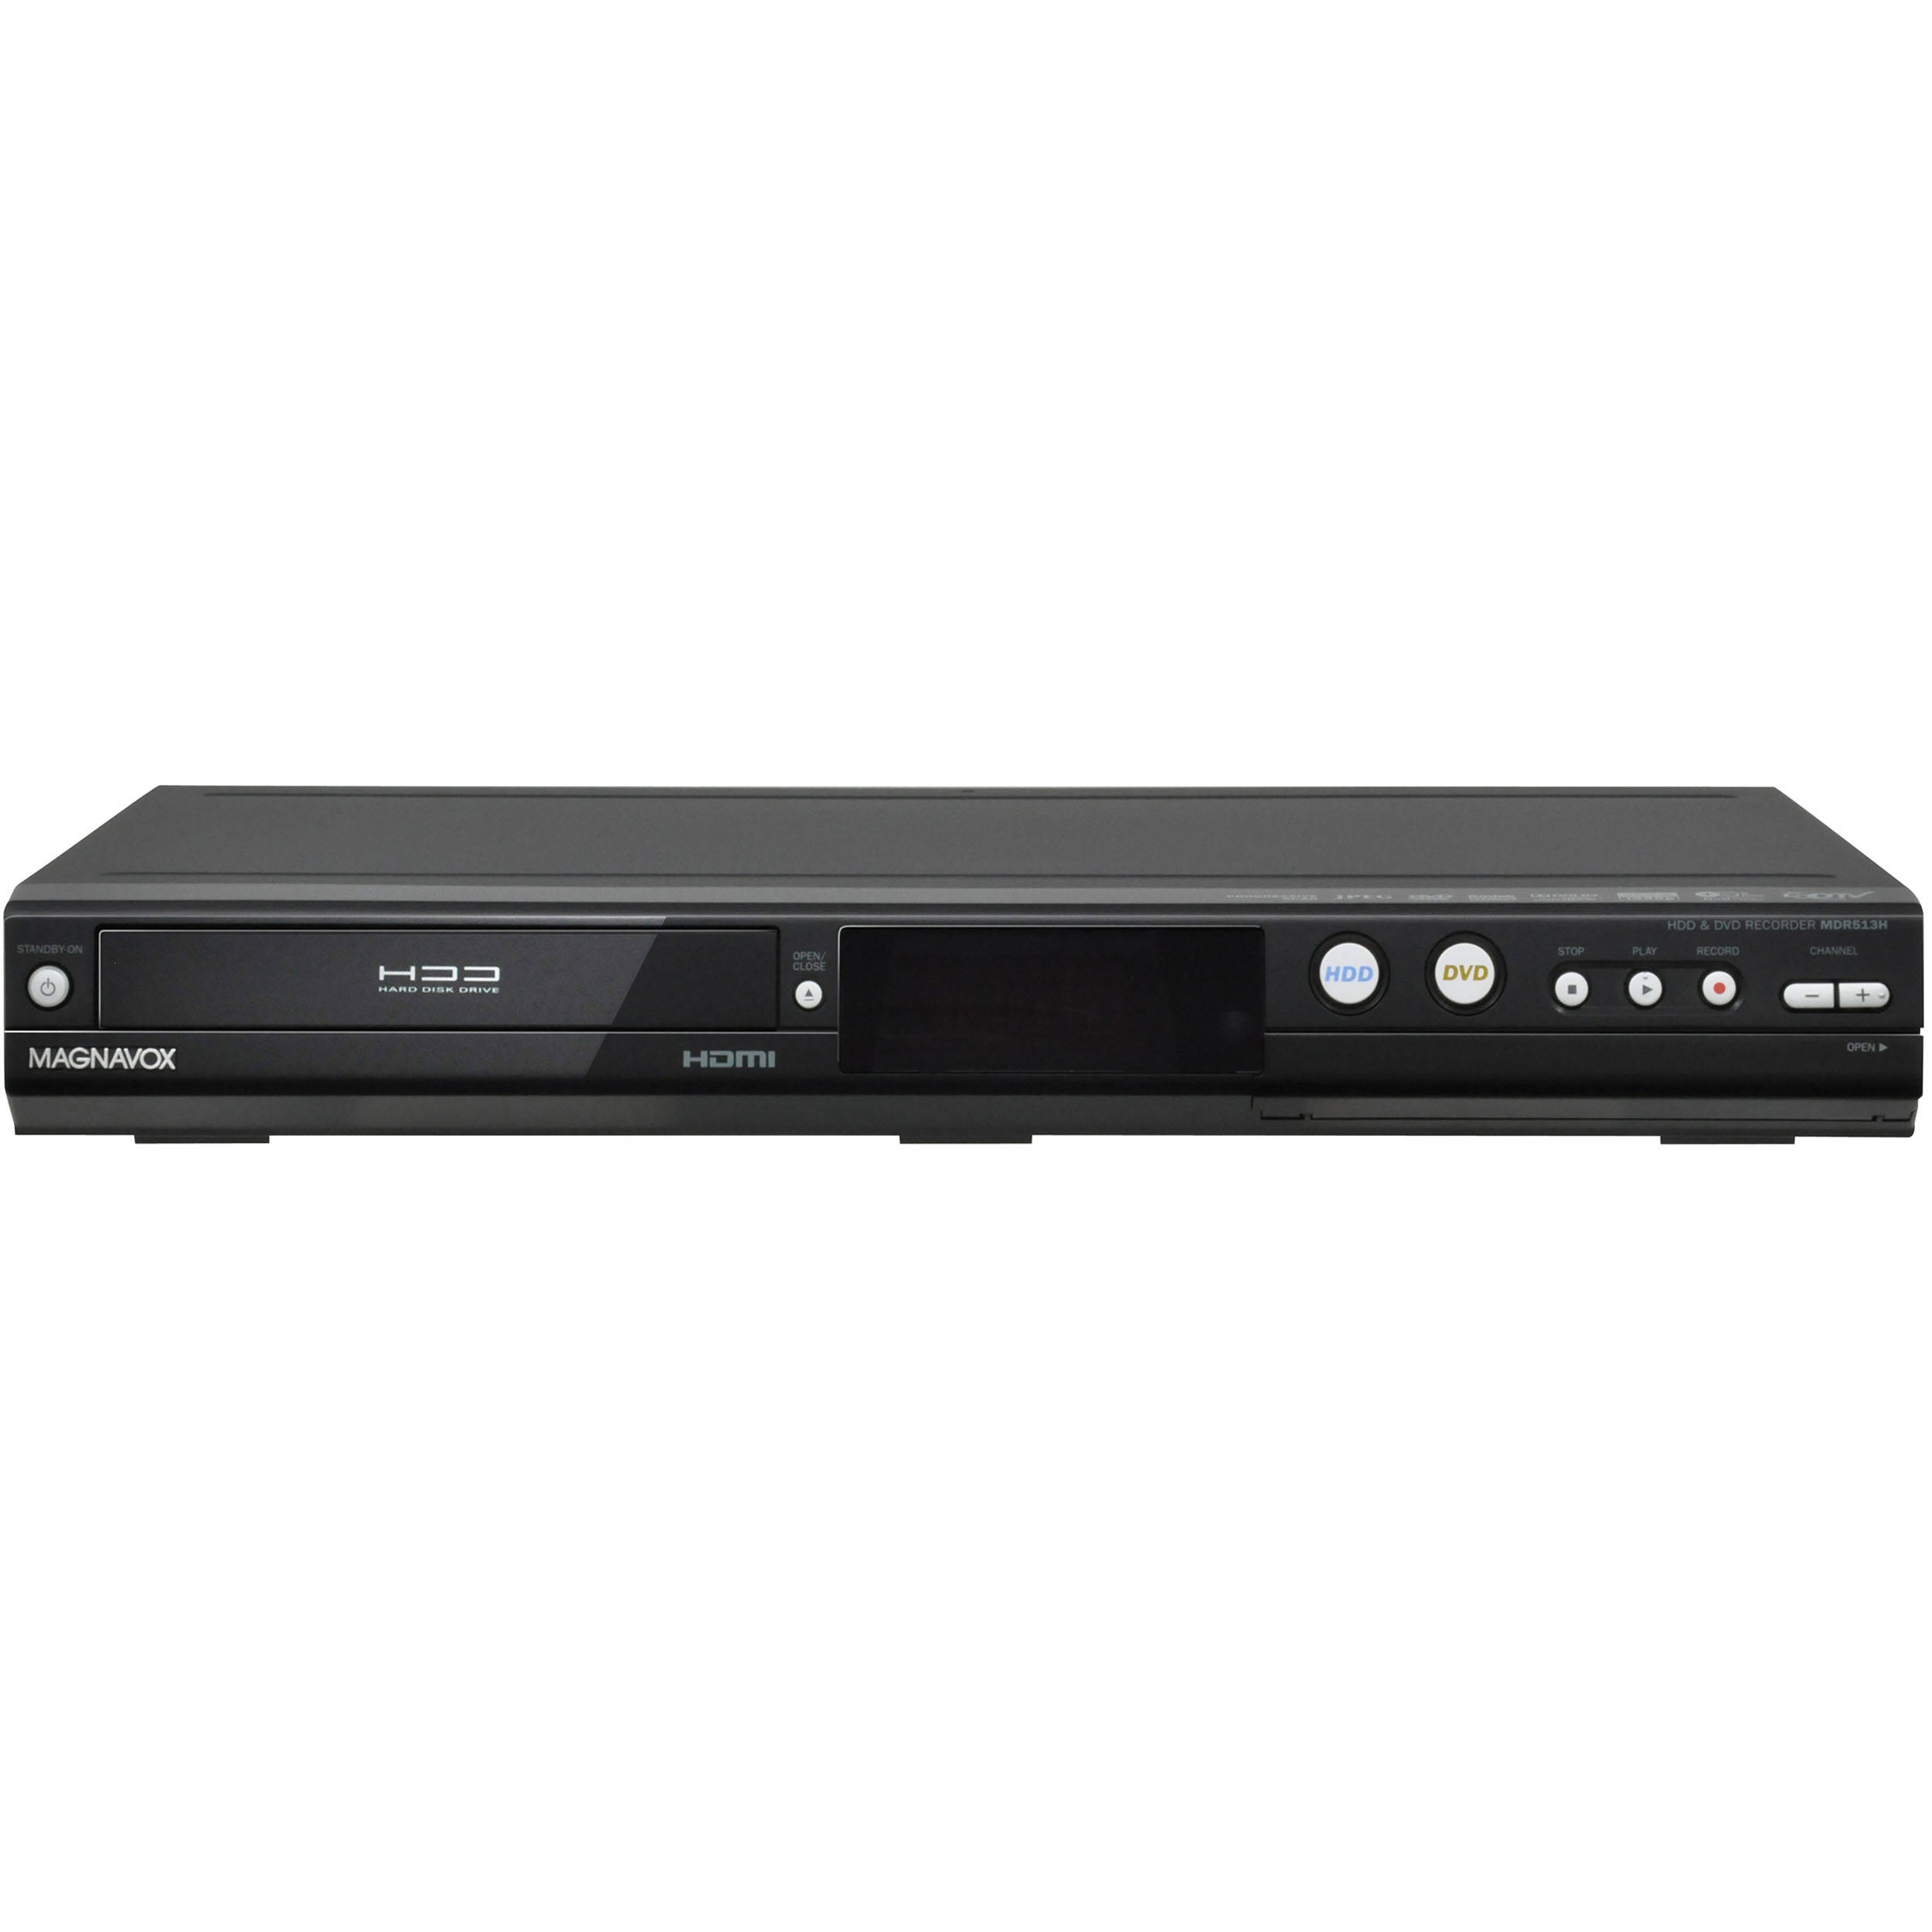 Magnavox Dvd Recorder Zc352mw8a Unable To Eject From Mac Mini Vcr Wiring Diagram Related Book Ebook Pdf Service Manuals Home 2014 Triumph Speed Triple R Abs Daytona 675r